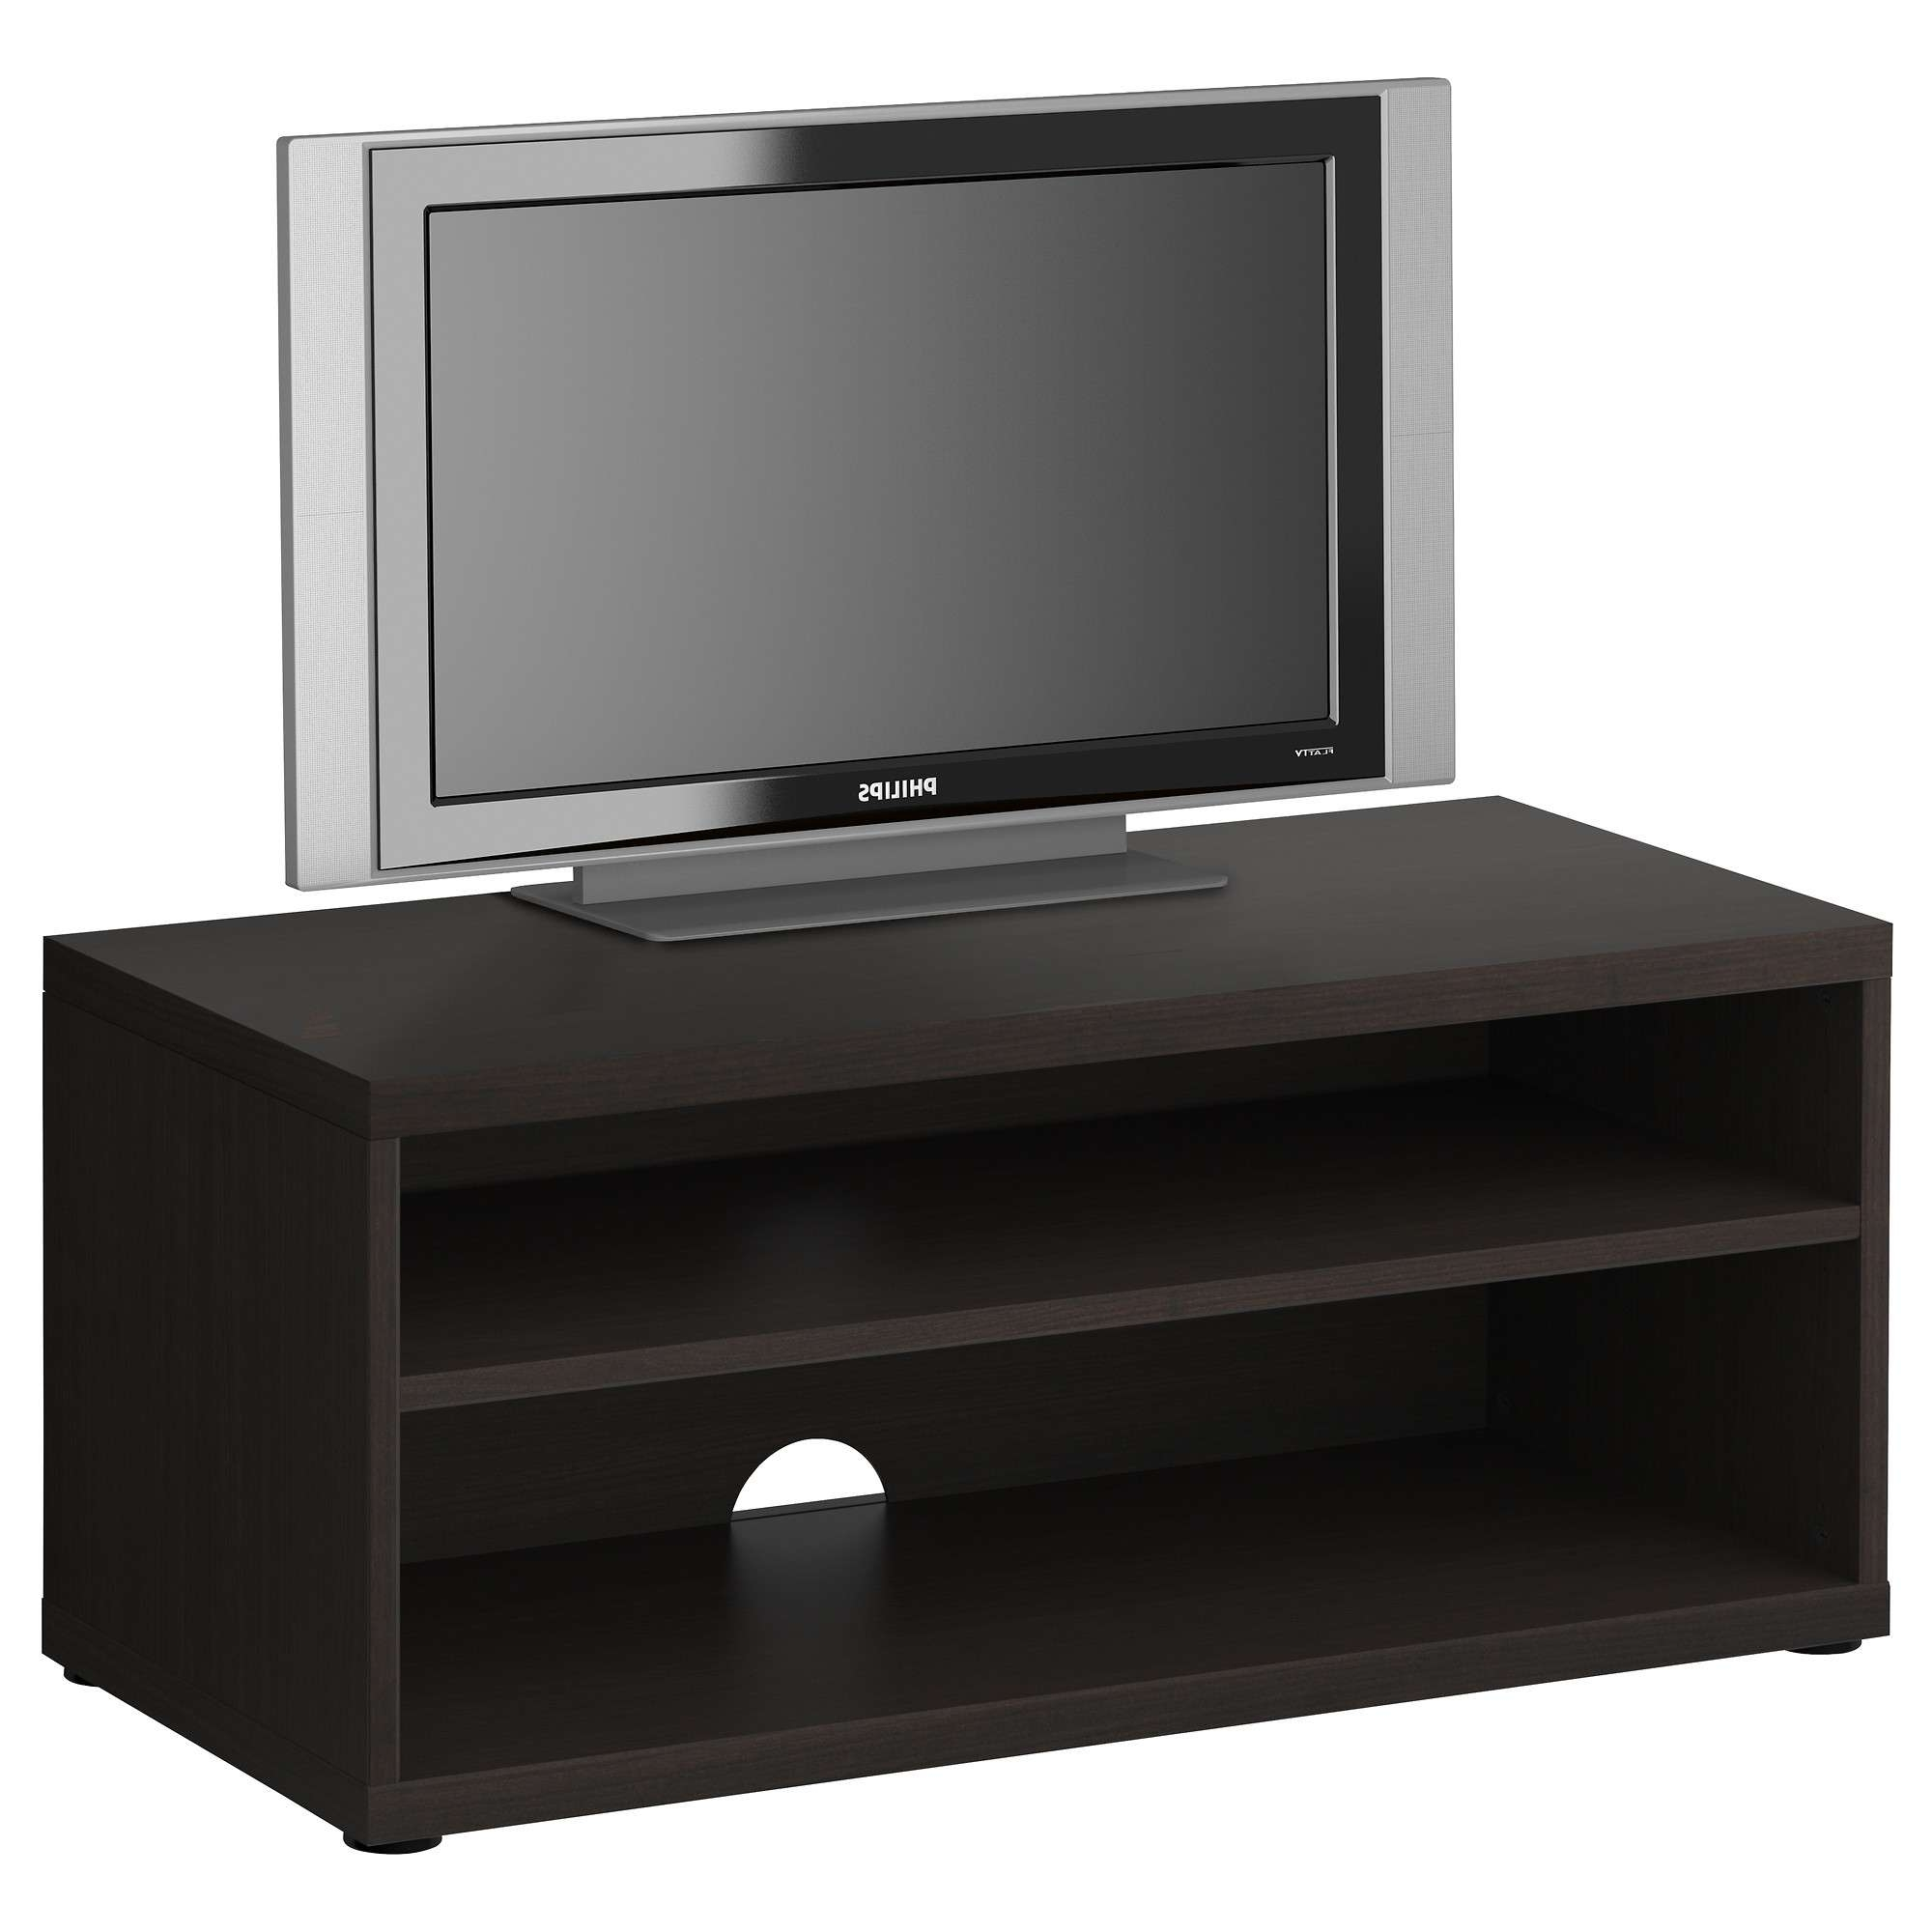 Tv Stands & Tv Units | Ikea With Regard To Black Tv Cabinets With Drawers (View 18 of 20)